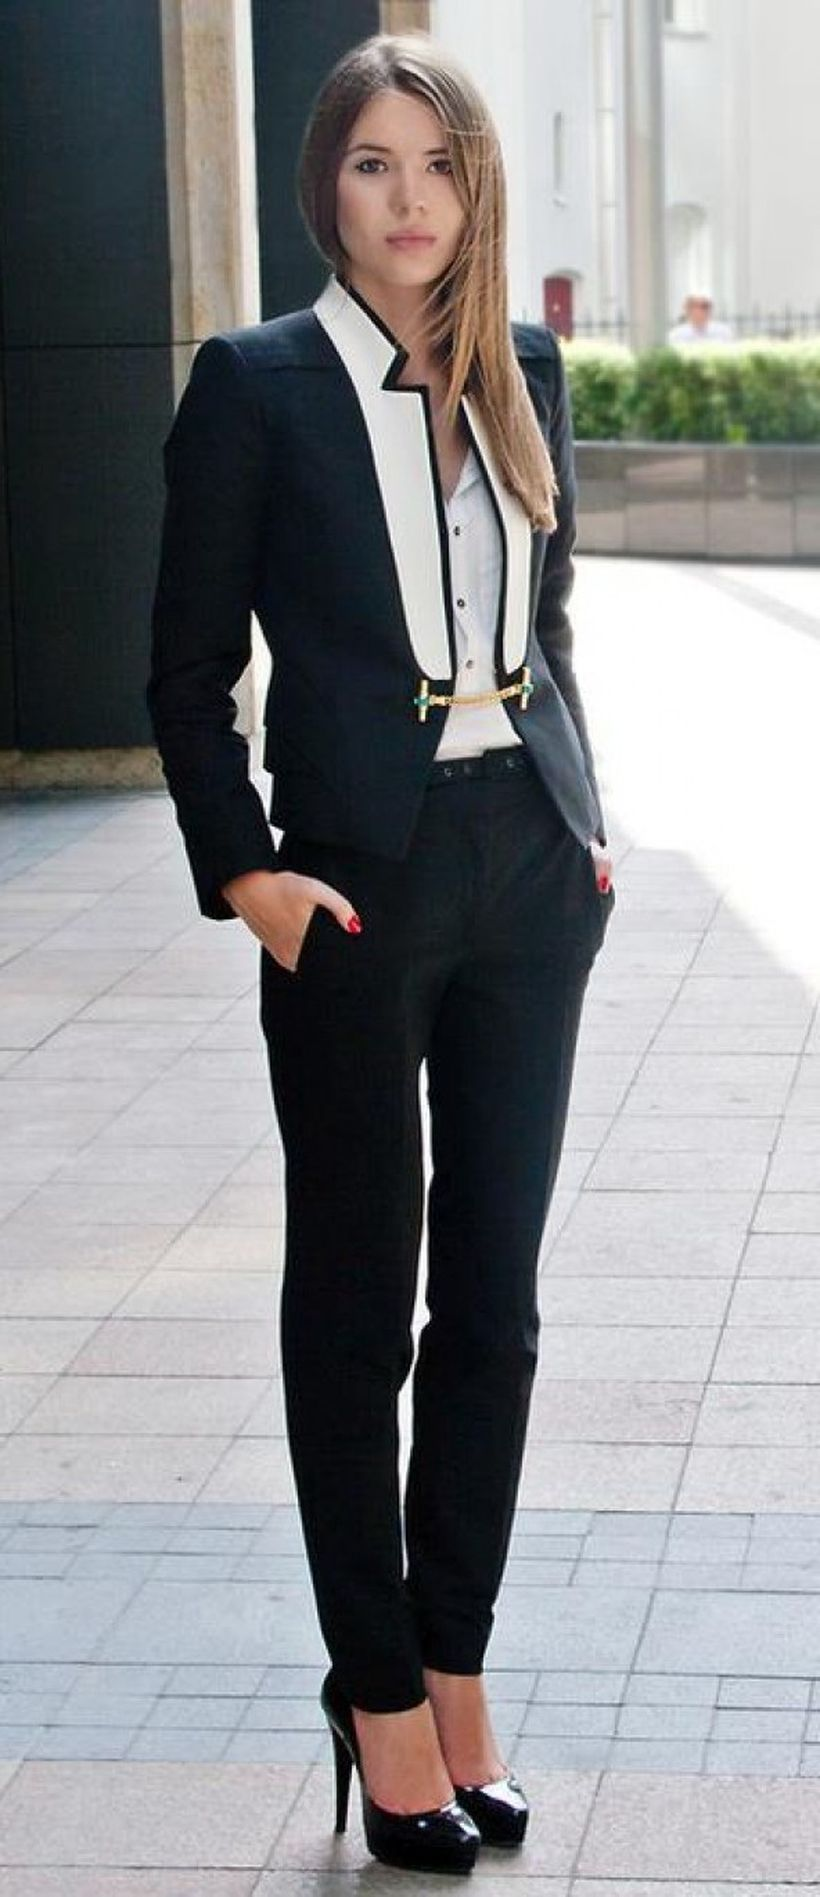 An-interesting-blazer-hitam-double-breasted.-